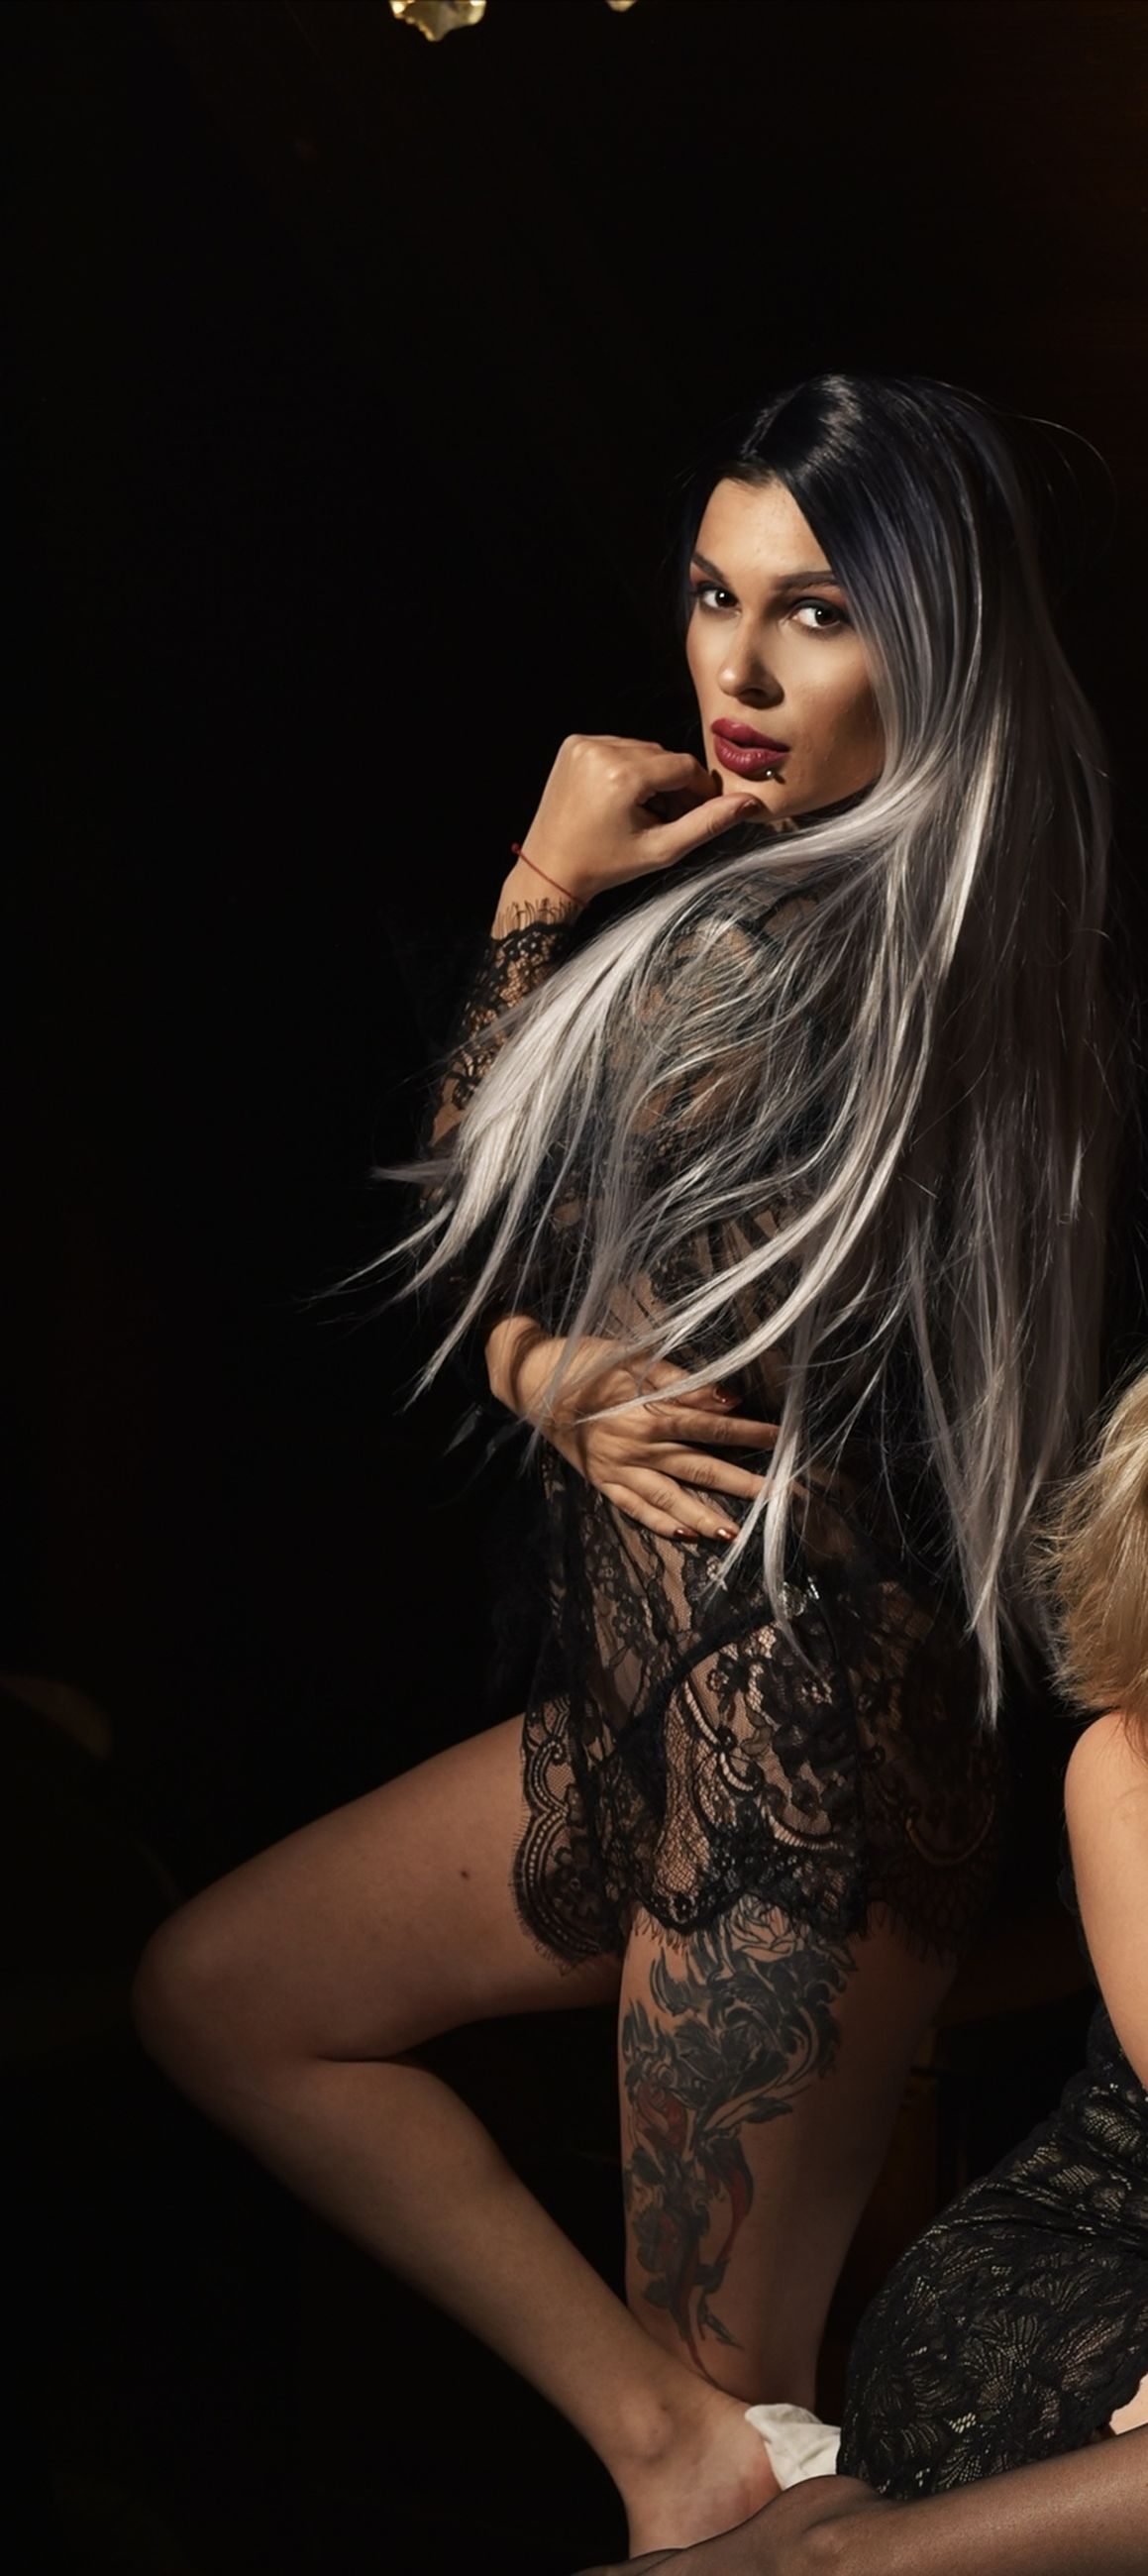 women, adult, young adult, long hair, one person, fashion, hairstyle, indoors, portrait, clothing, photo shoot, female, studio shot, looking at camera, black, underwear, black background, desire, night, glamour, blond hair, arts culture and entertainment, elegance, lingerie, make-up, lifestyles, looking, dark, person, human hair